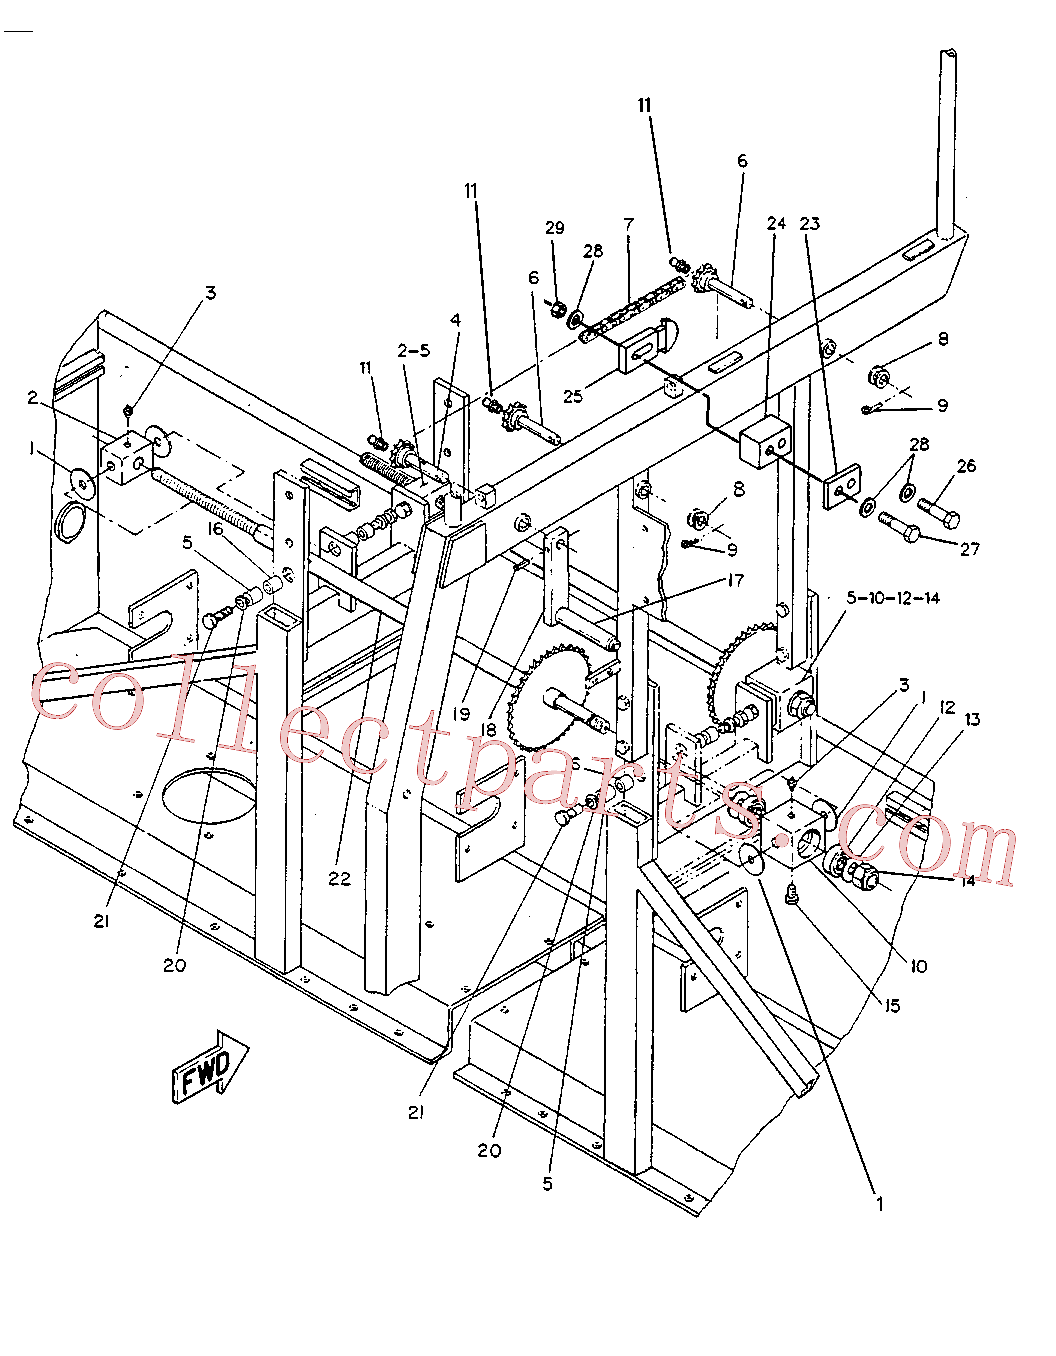 CAT 8C-6866 for 12M Motor Grader(MG) frame and body 6R-3378 Assembly